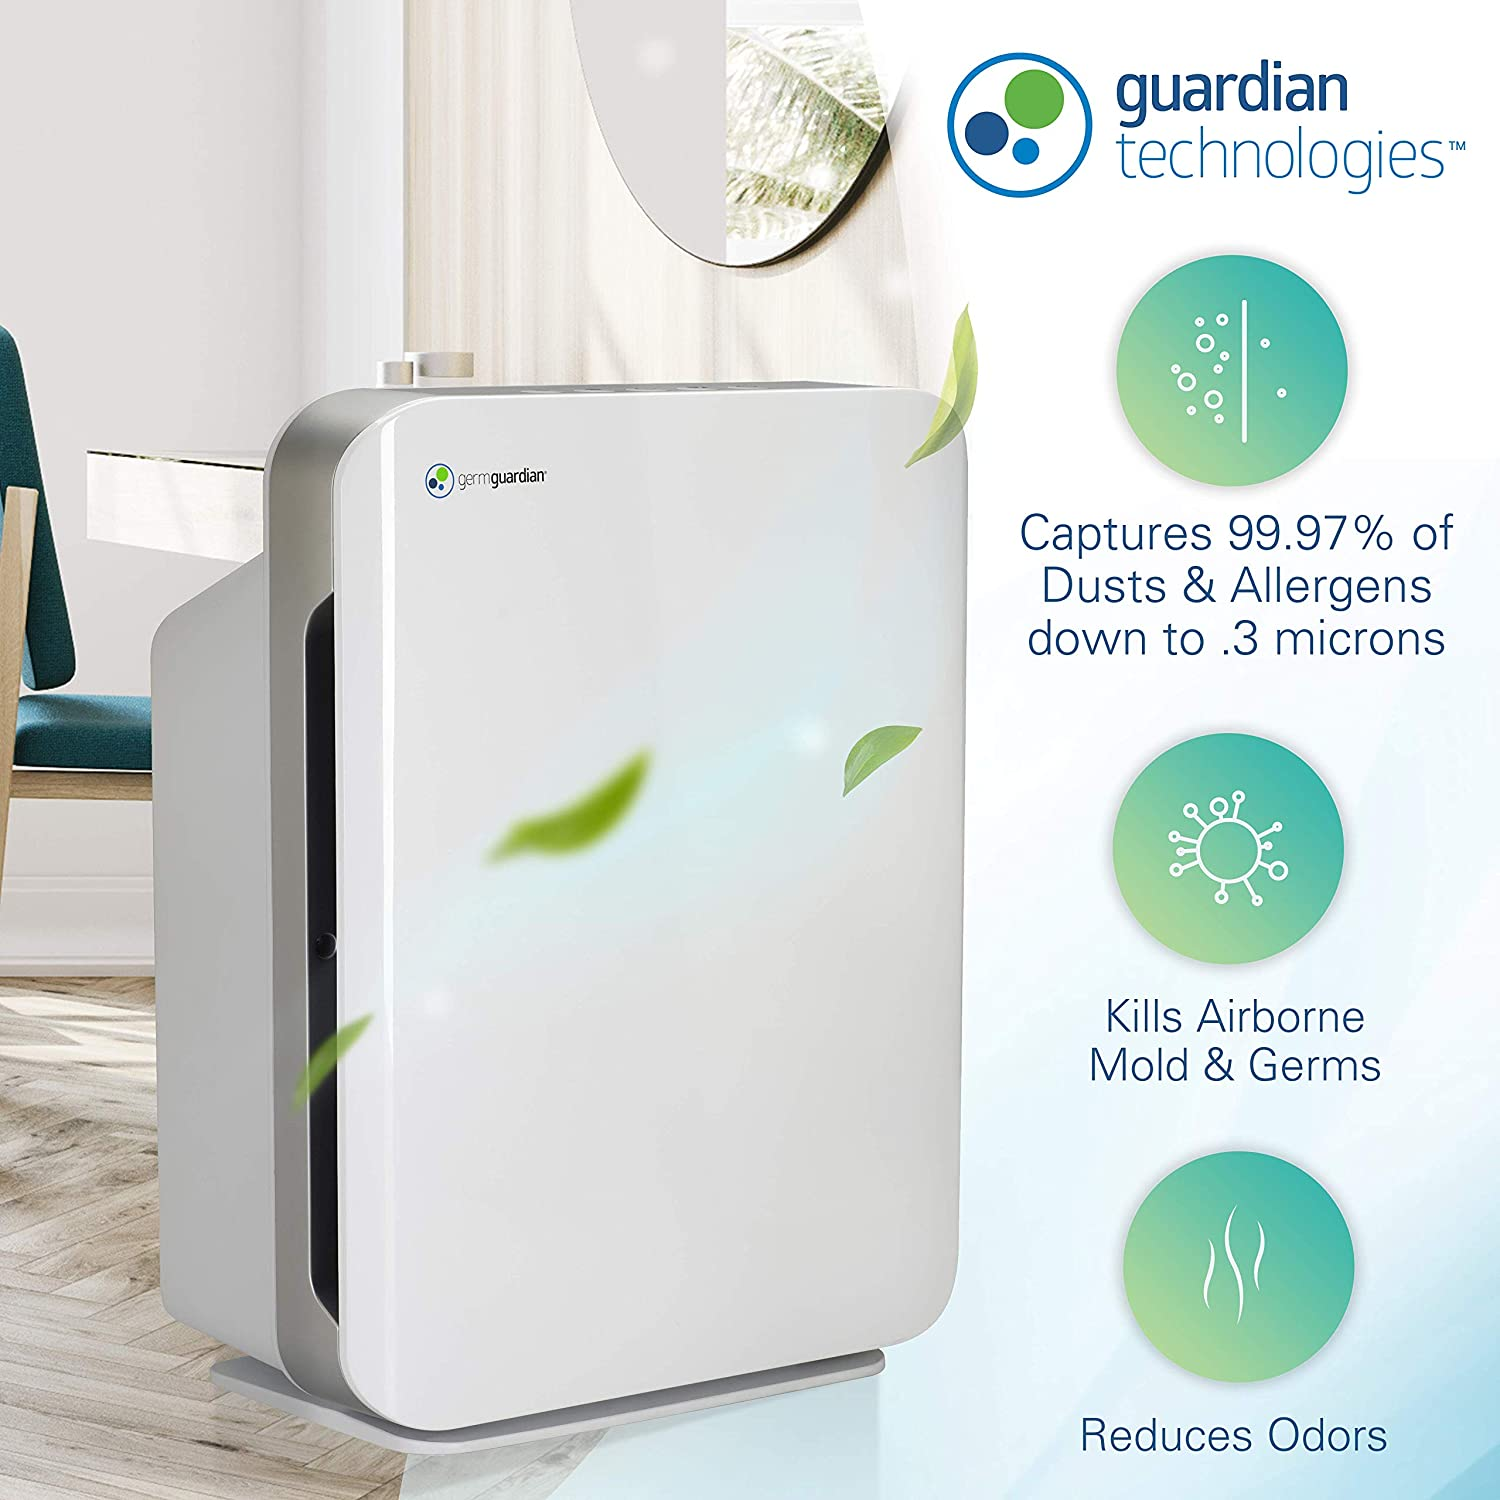 Germ Guardian AC5900WCA 21 3-in-1 True HEPA Filter Air Purifier for Home, Large Rooms, UV-C Sanitizer, Filters Allergies, Smoke, Dust, Pet Dander, Odors, 3-Yr Wty, GermGuardian, White